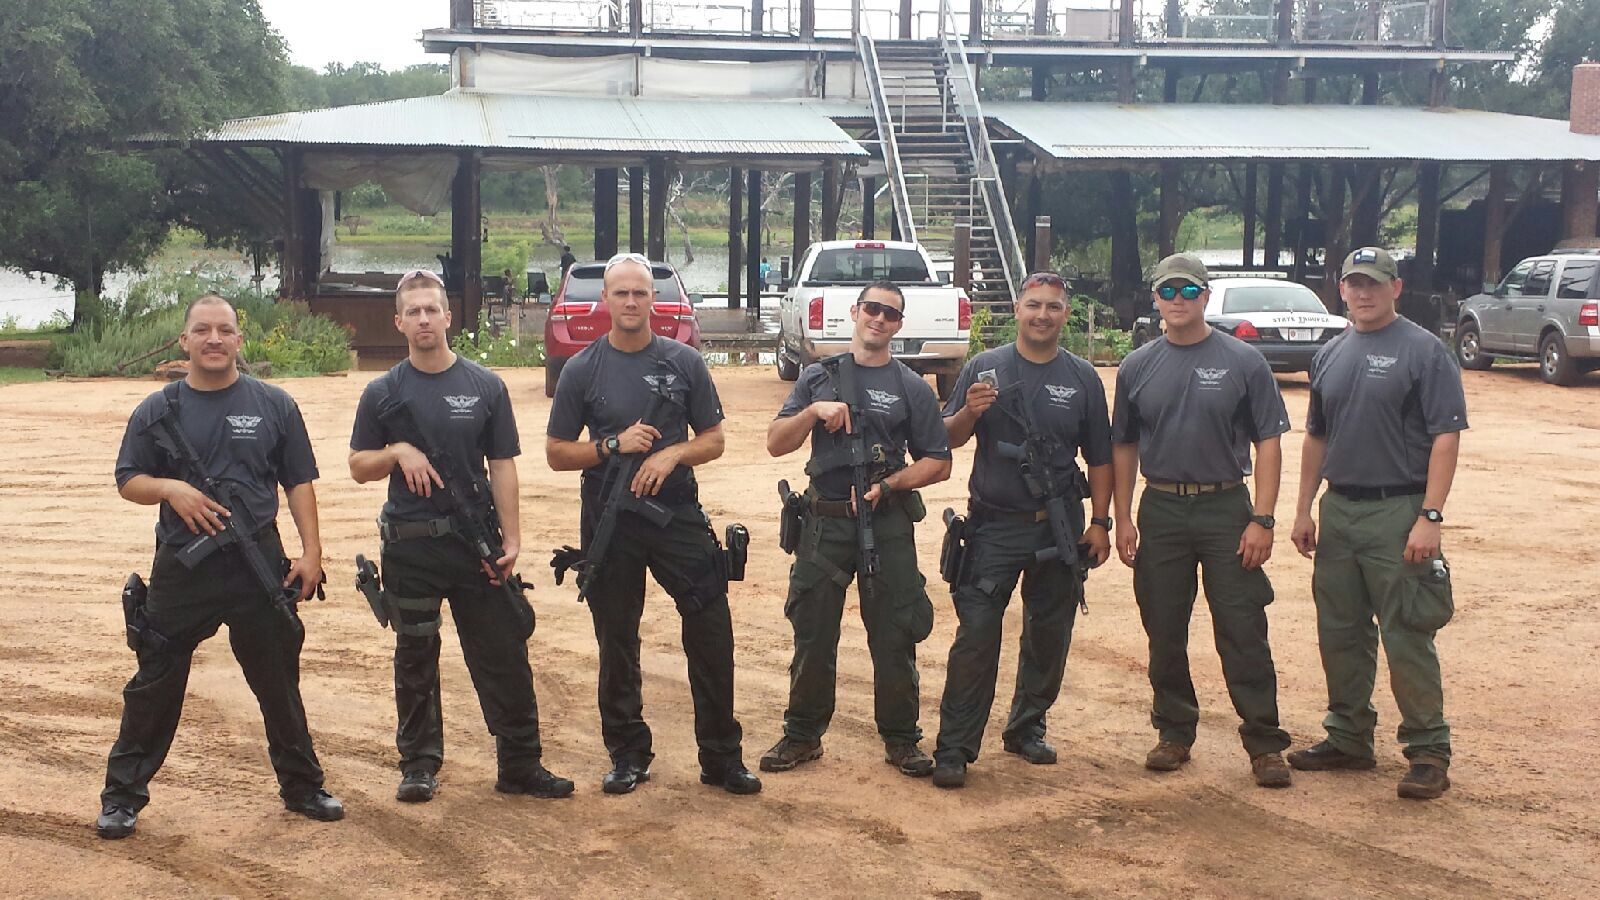 Design your own t shirt military - Southern Regional Response Group Special Response Team T Shirt Photo